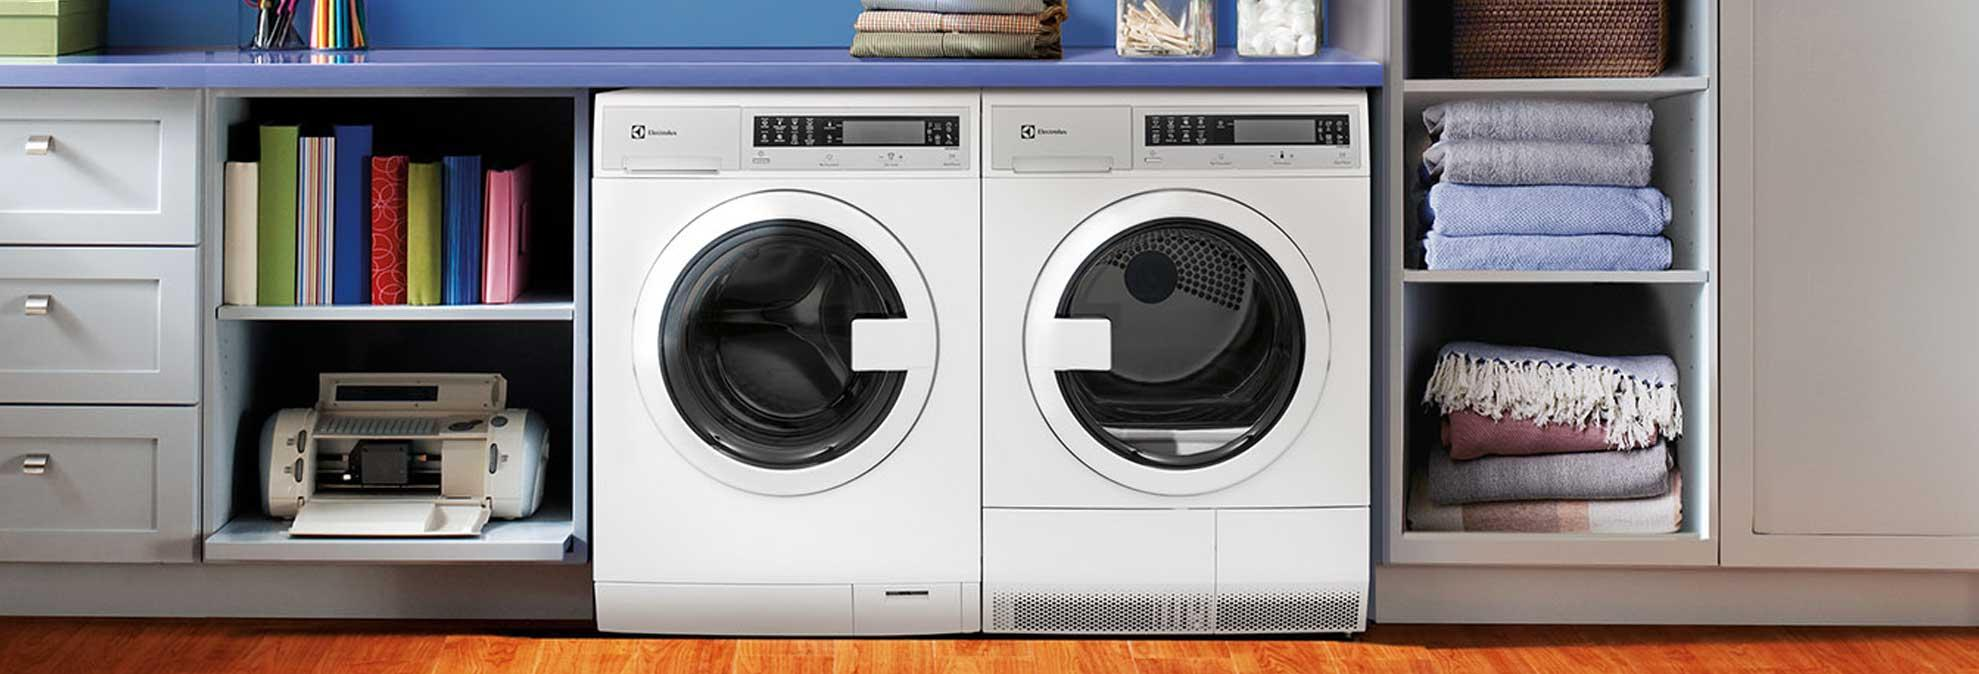 What to know about a compact washer and dryer set - Small space washing machines set ...